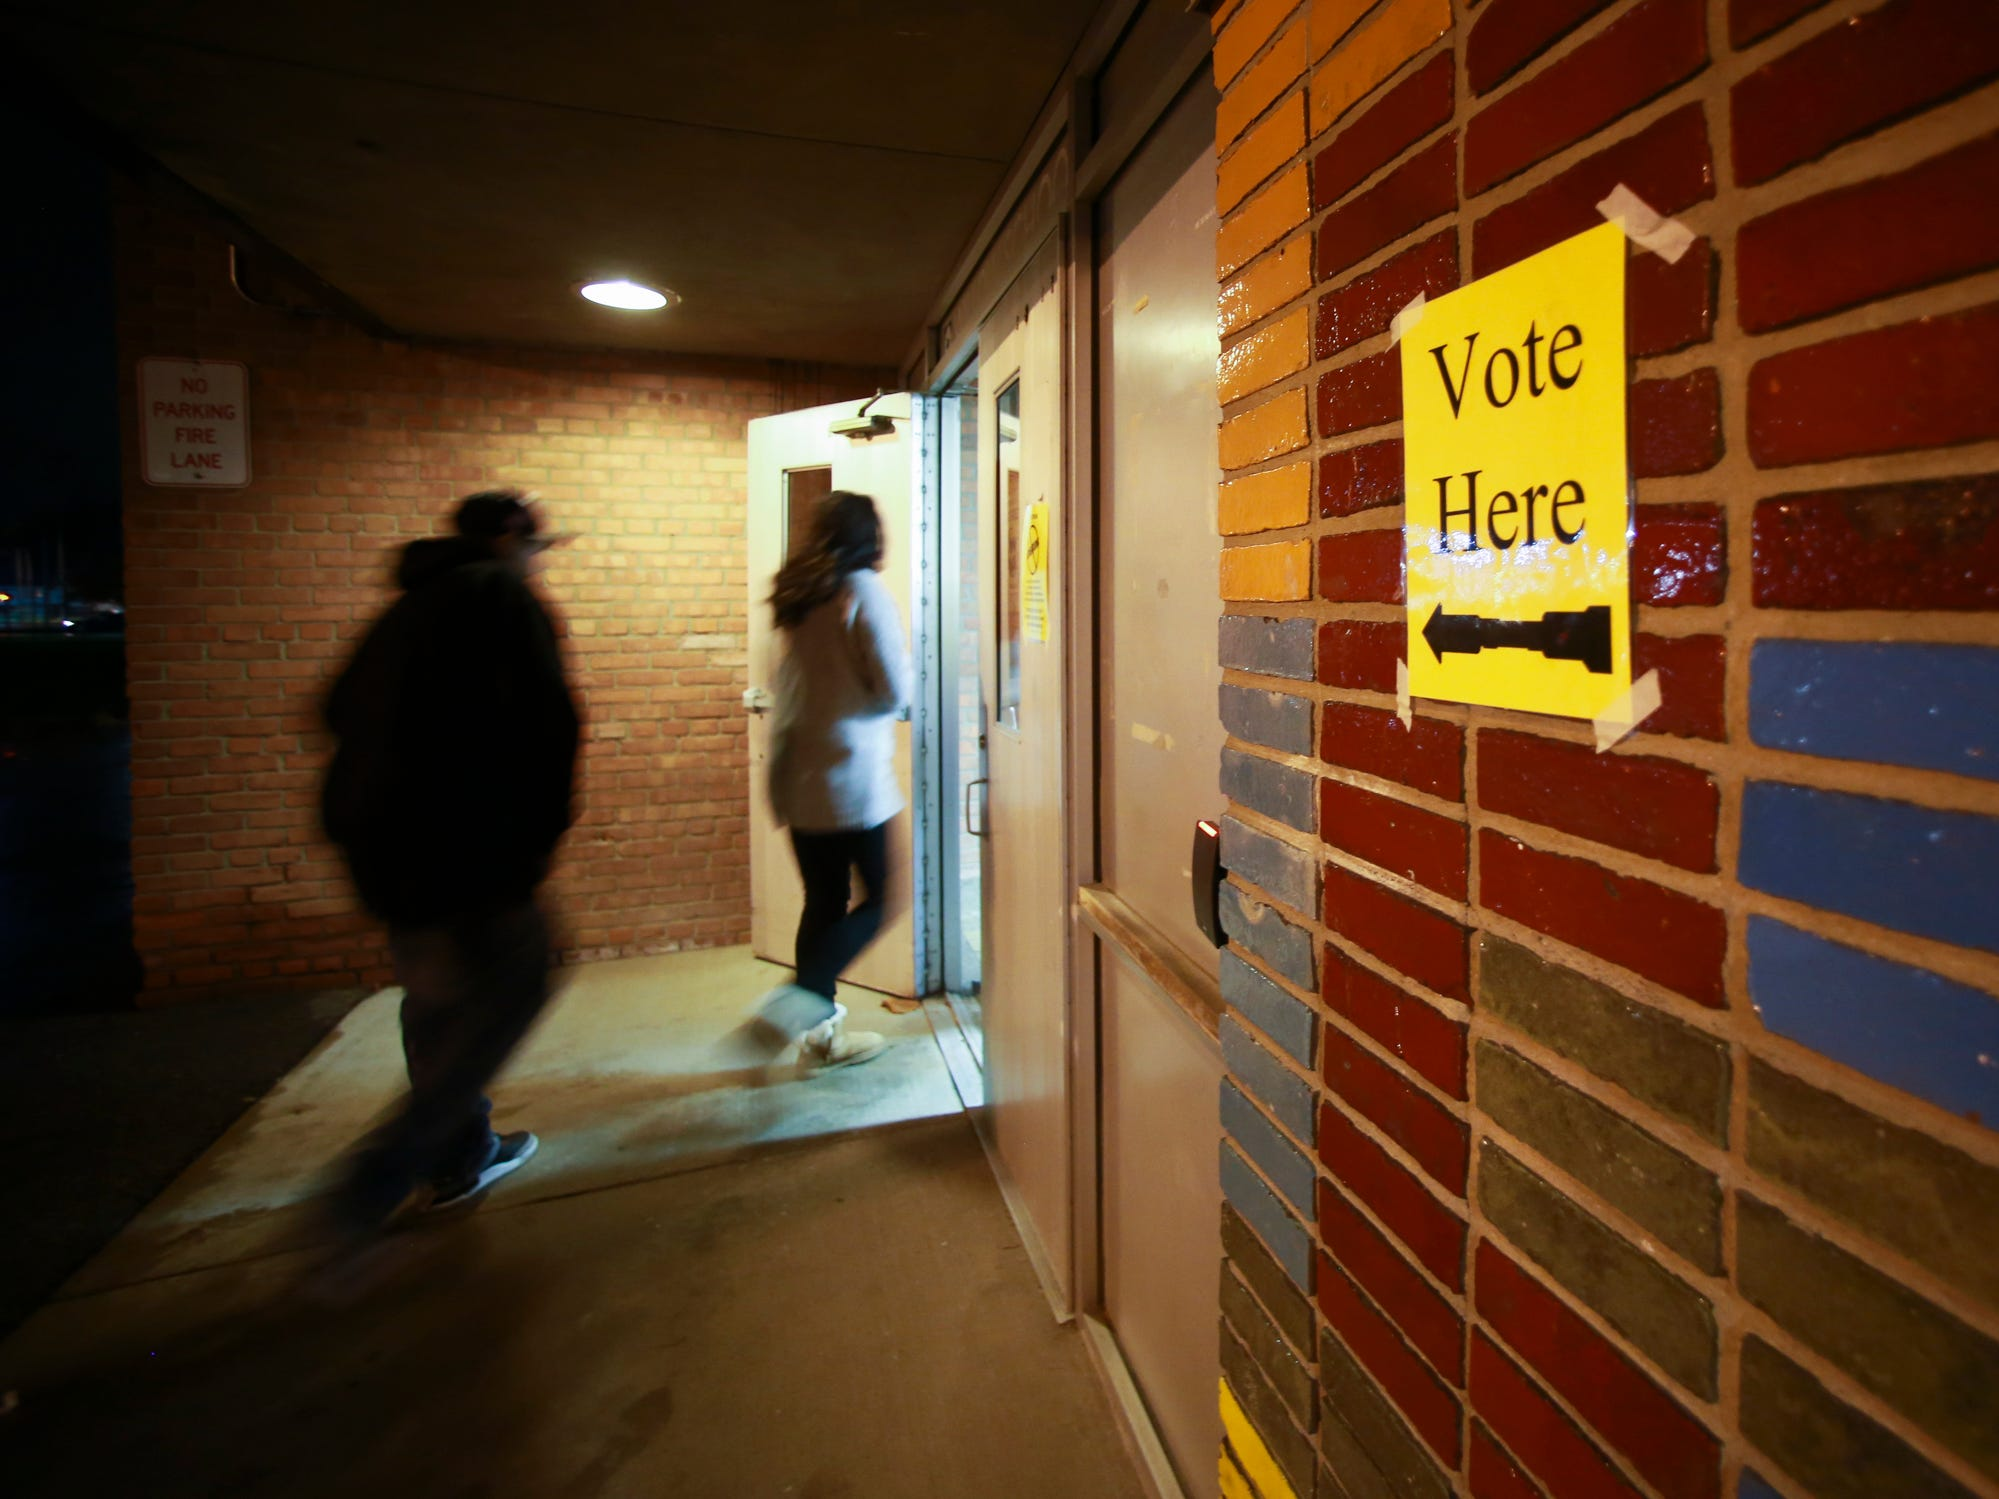 Last minute voters head into Willow School in Lansing Tuesday evening, Nov. 6, 2018, to cast their ballots in the 2018 midterm election.